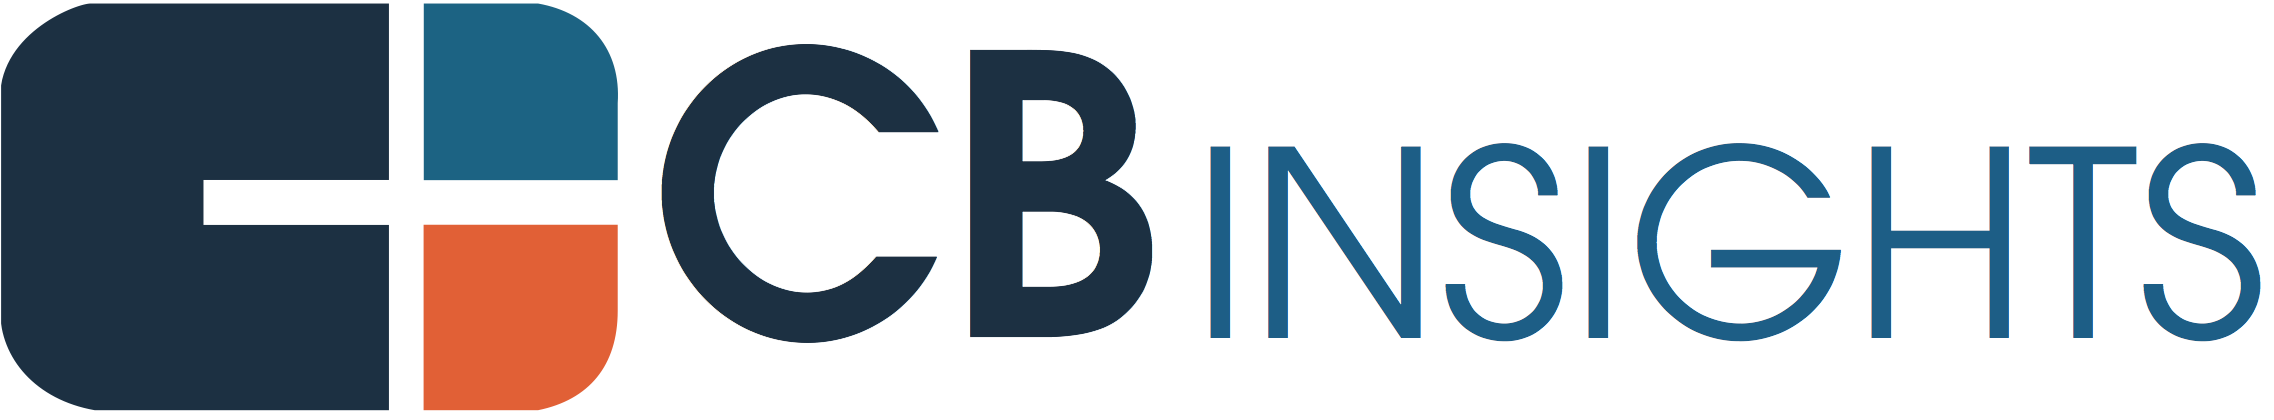 Image result for cbinsights